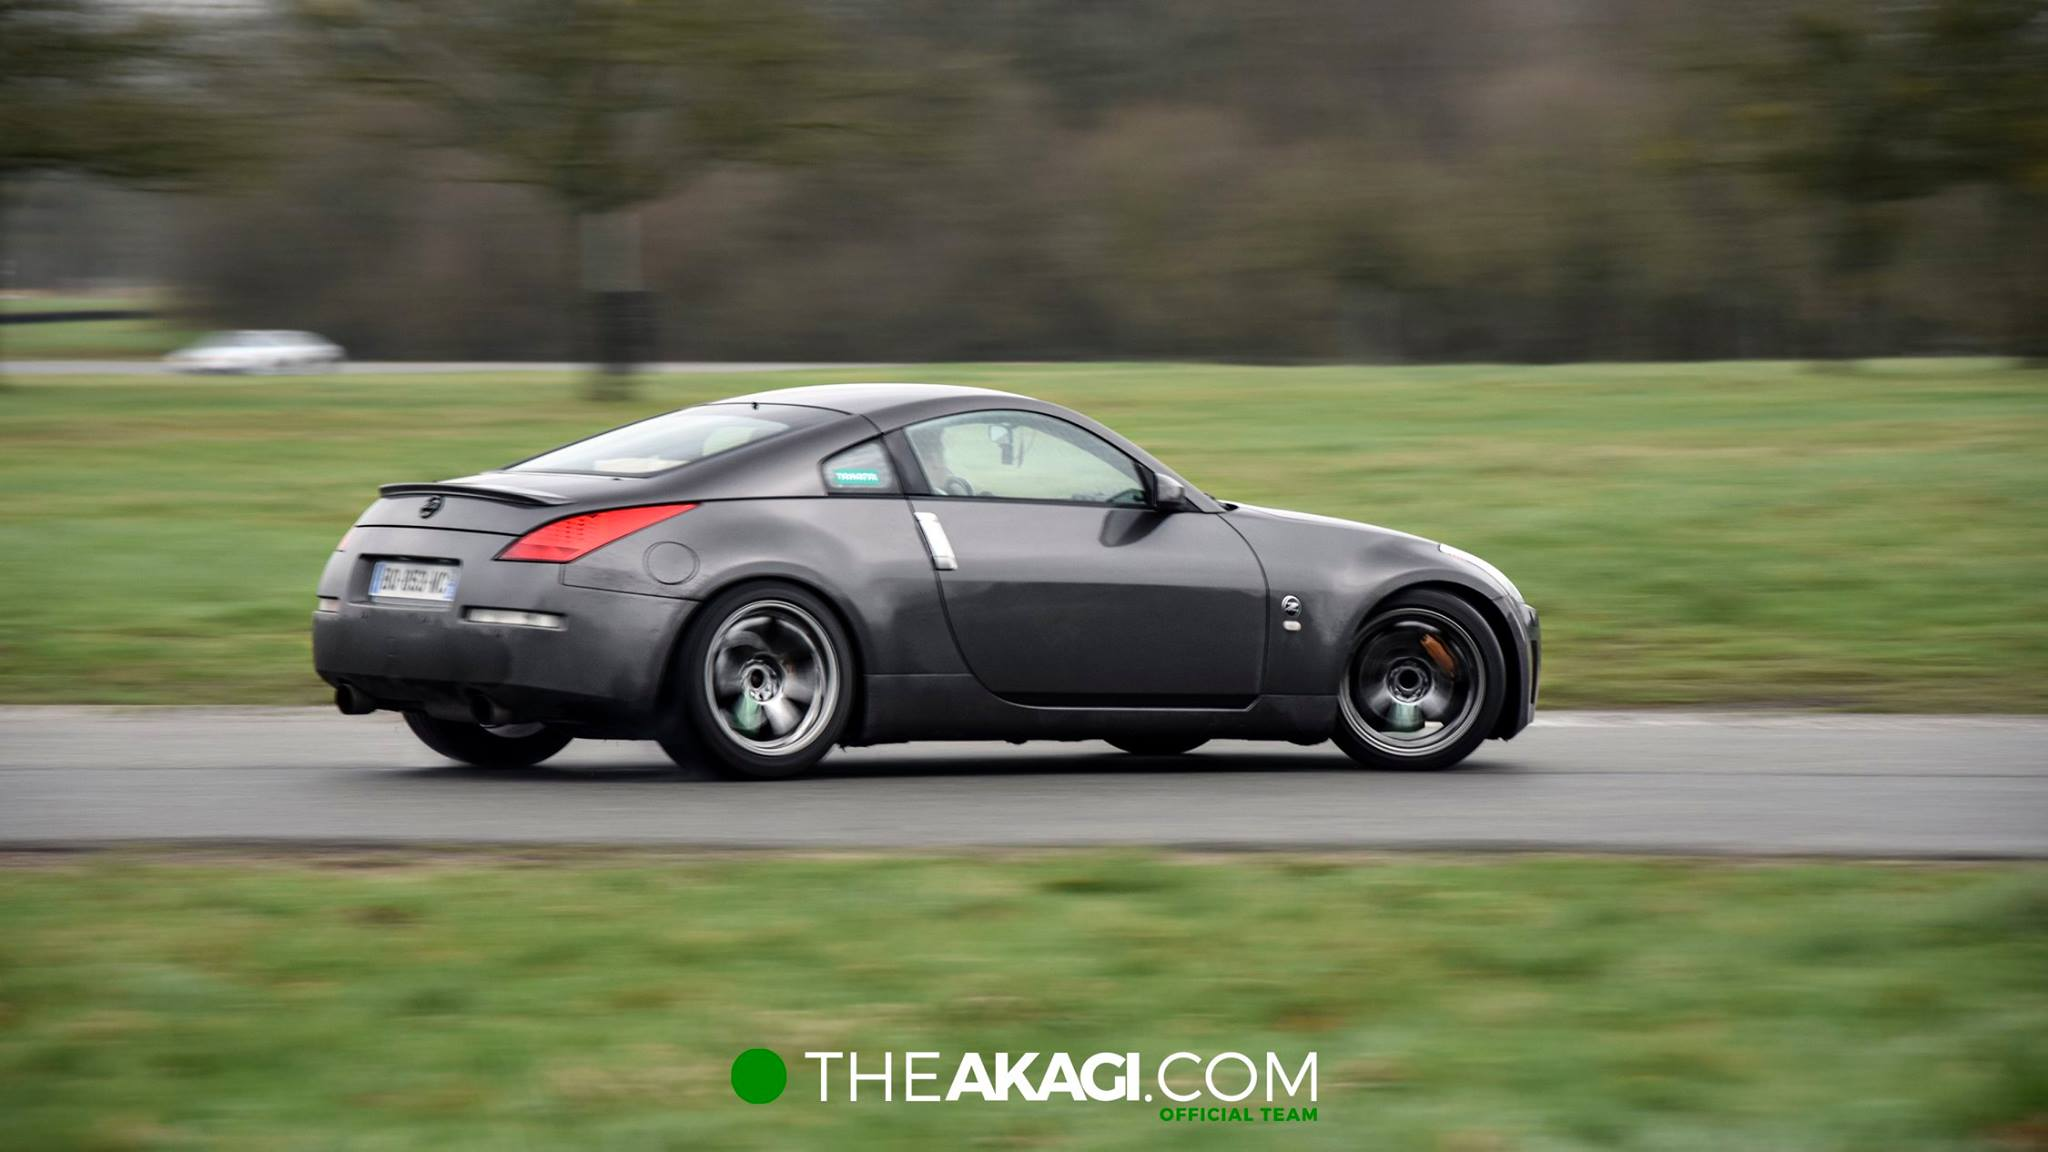 THEAKAGI.COM | DRIFT 350Z